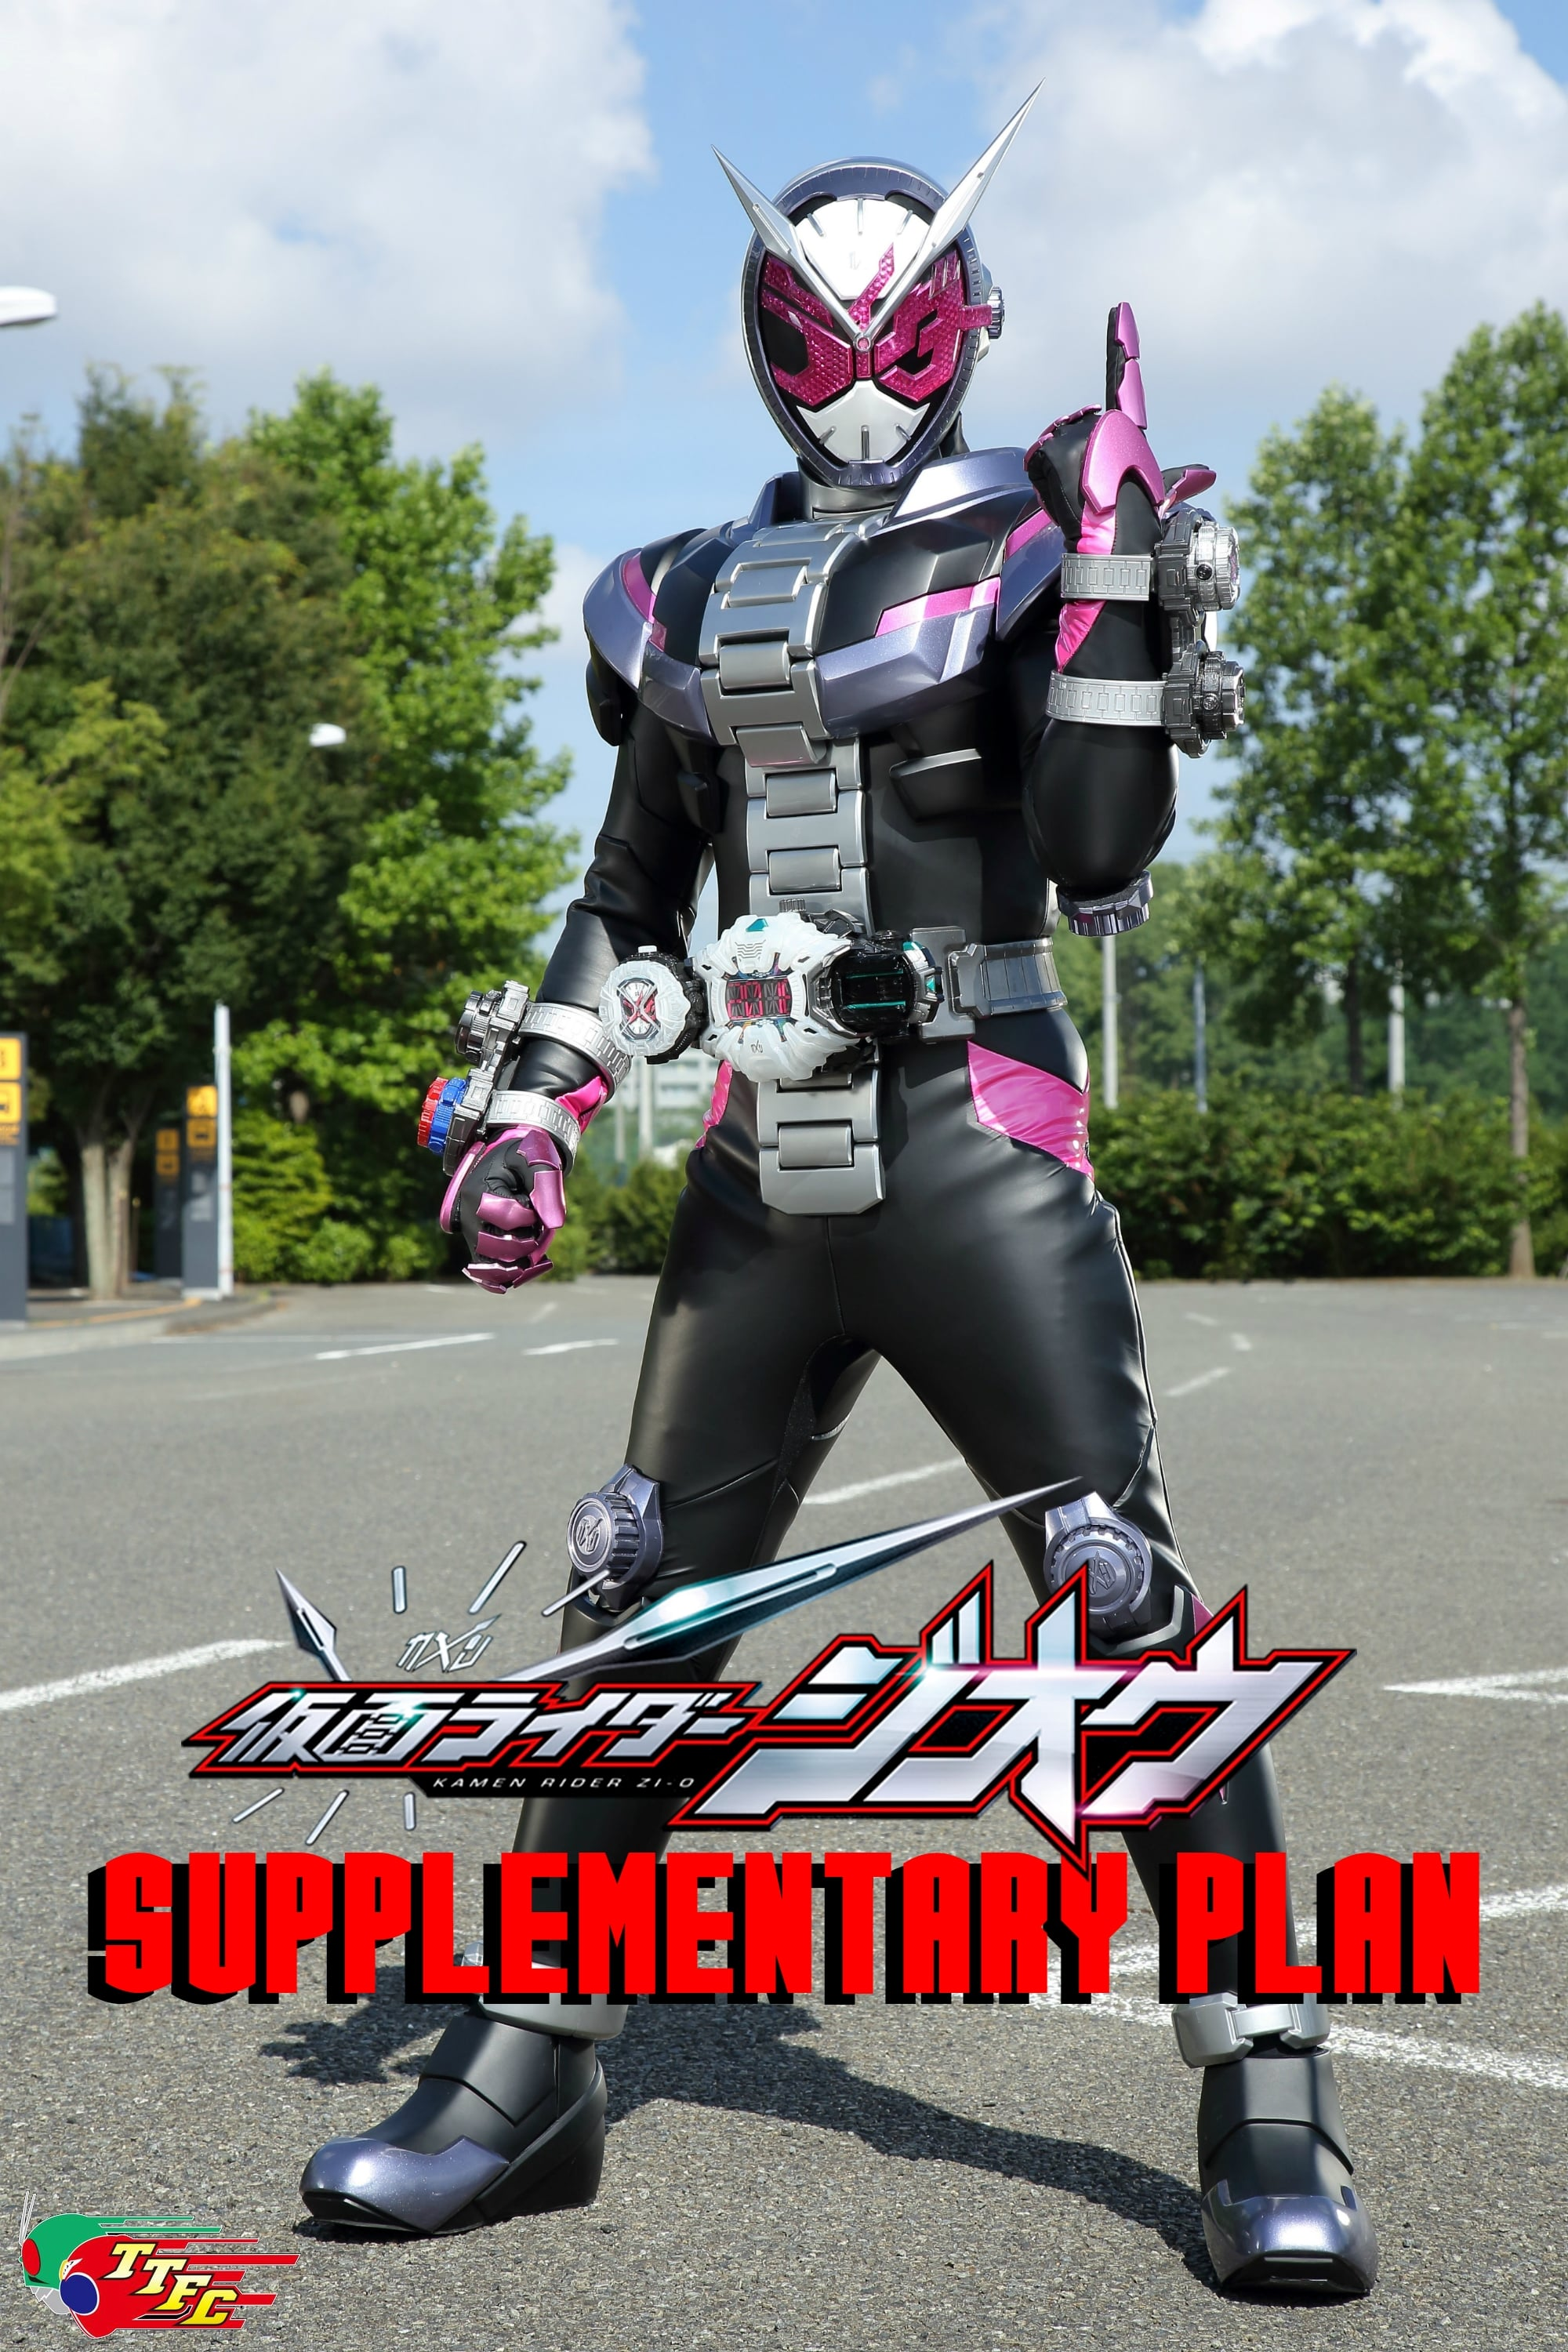 Kamen Rider Zi-O: Supplementary Plan (2018)